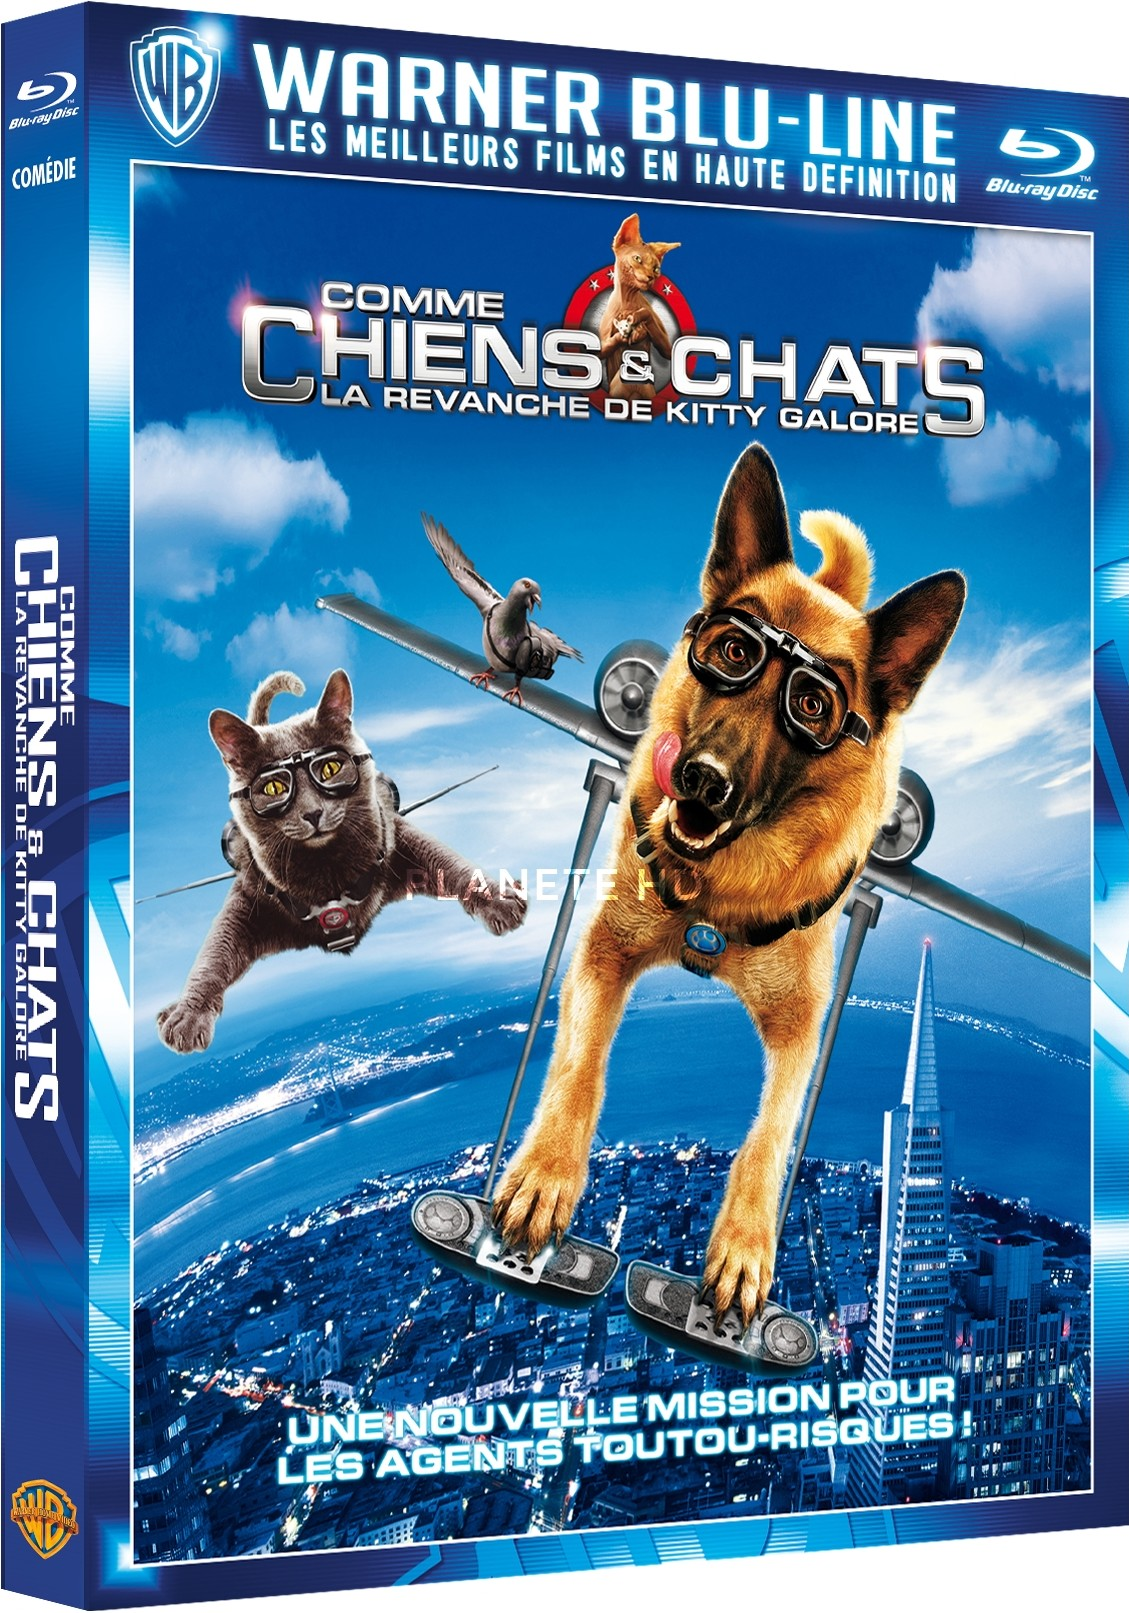 Comme Chien Et Chat 2 : comme, chien, Comme, Chiens, Chats, Revanche, Kitty, Galore, Simple, Blu-ray, (Warner, Bros., France)